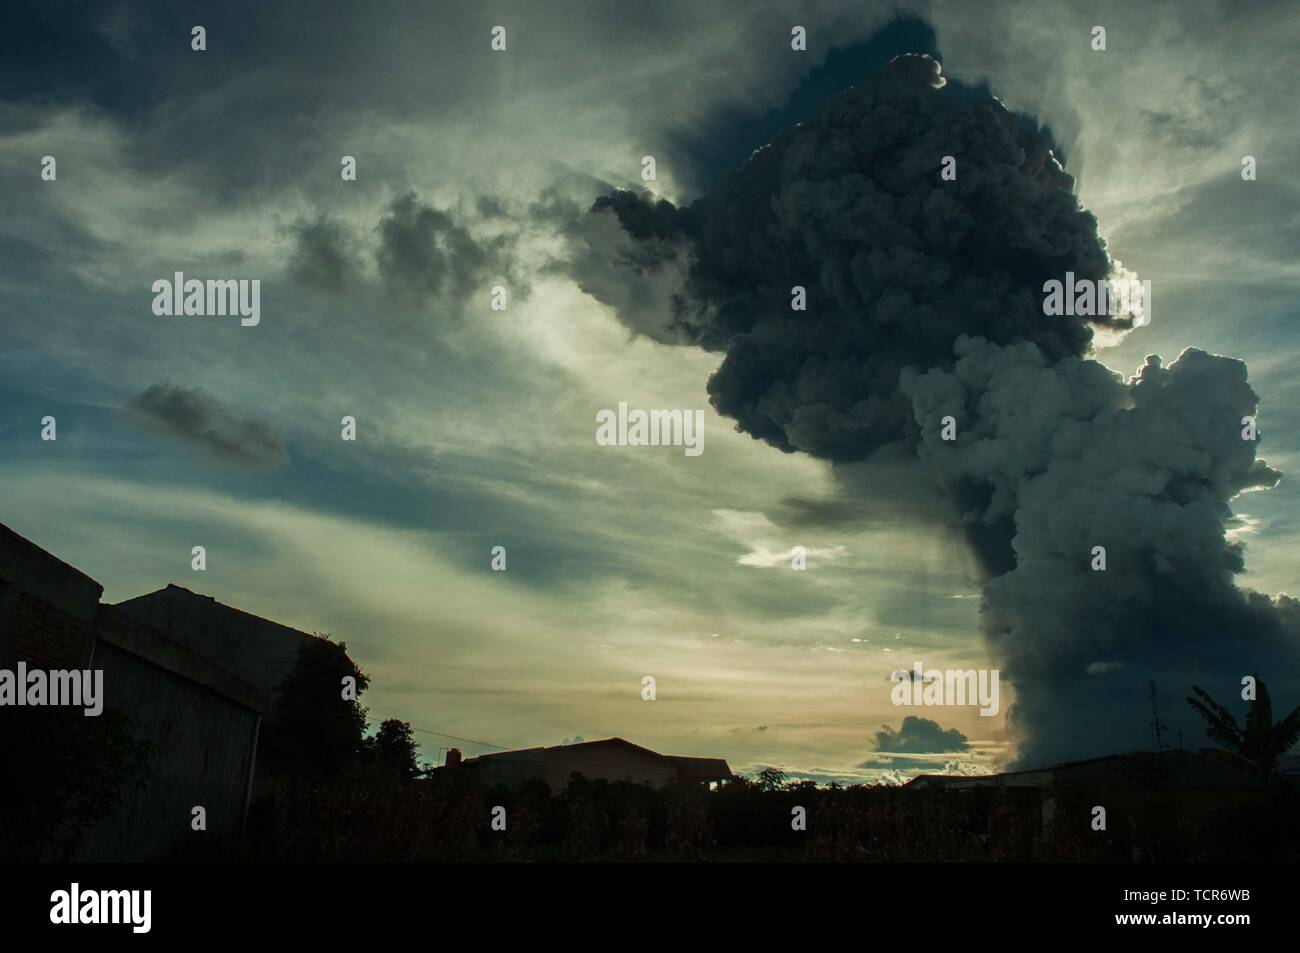 """Sumatra, Indonesia. 09th June, 2019. The eruption of Mt. Sinabung, North Sumatra on June 9, 2019 at 16:28 with the ash column height observed ± 7,000 m above the peak (± 9,460 m above sea level). The ash column was observed to be black with thick intensity leaning southward. Seen from kabanjahe city. """"There was a hot cloud in the 3.5 km southeast and 3 km south and a roar came to the volcano observation post of Sinabung Currently Mount Sinabung is in Status * Level III (Standby)' Said vulcano officer guard from radio communication. Credit: Sabirin Manurung/Pacific Press/Alamy Live News Credit: Stock Photo"""